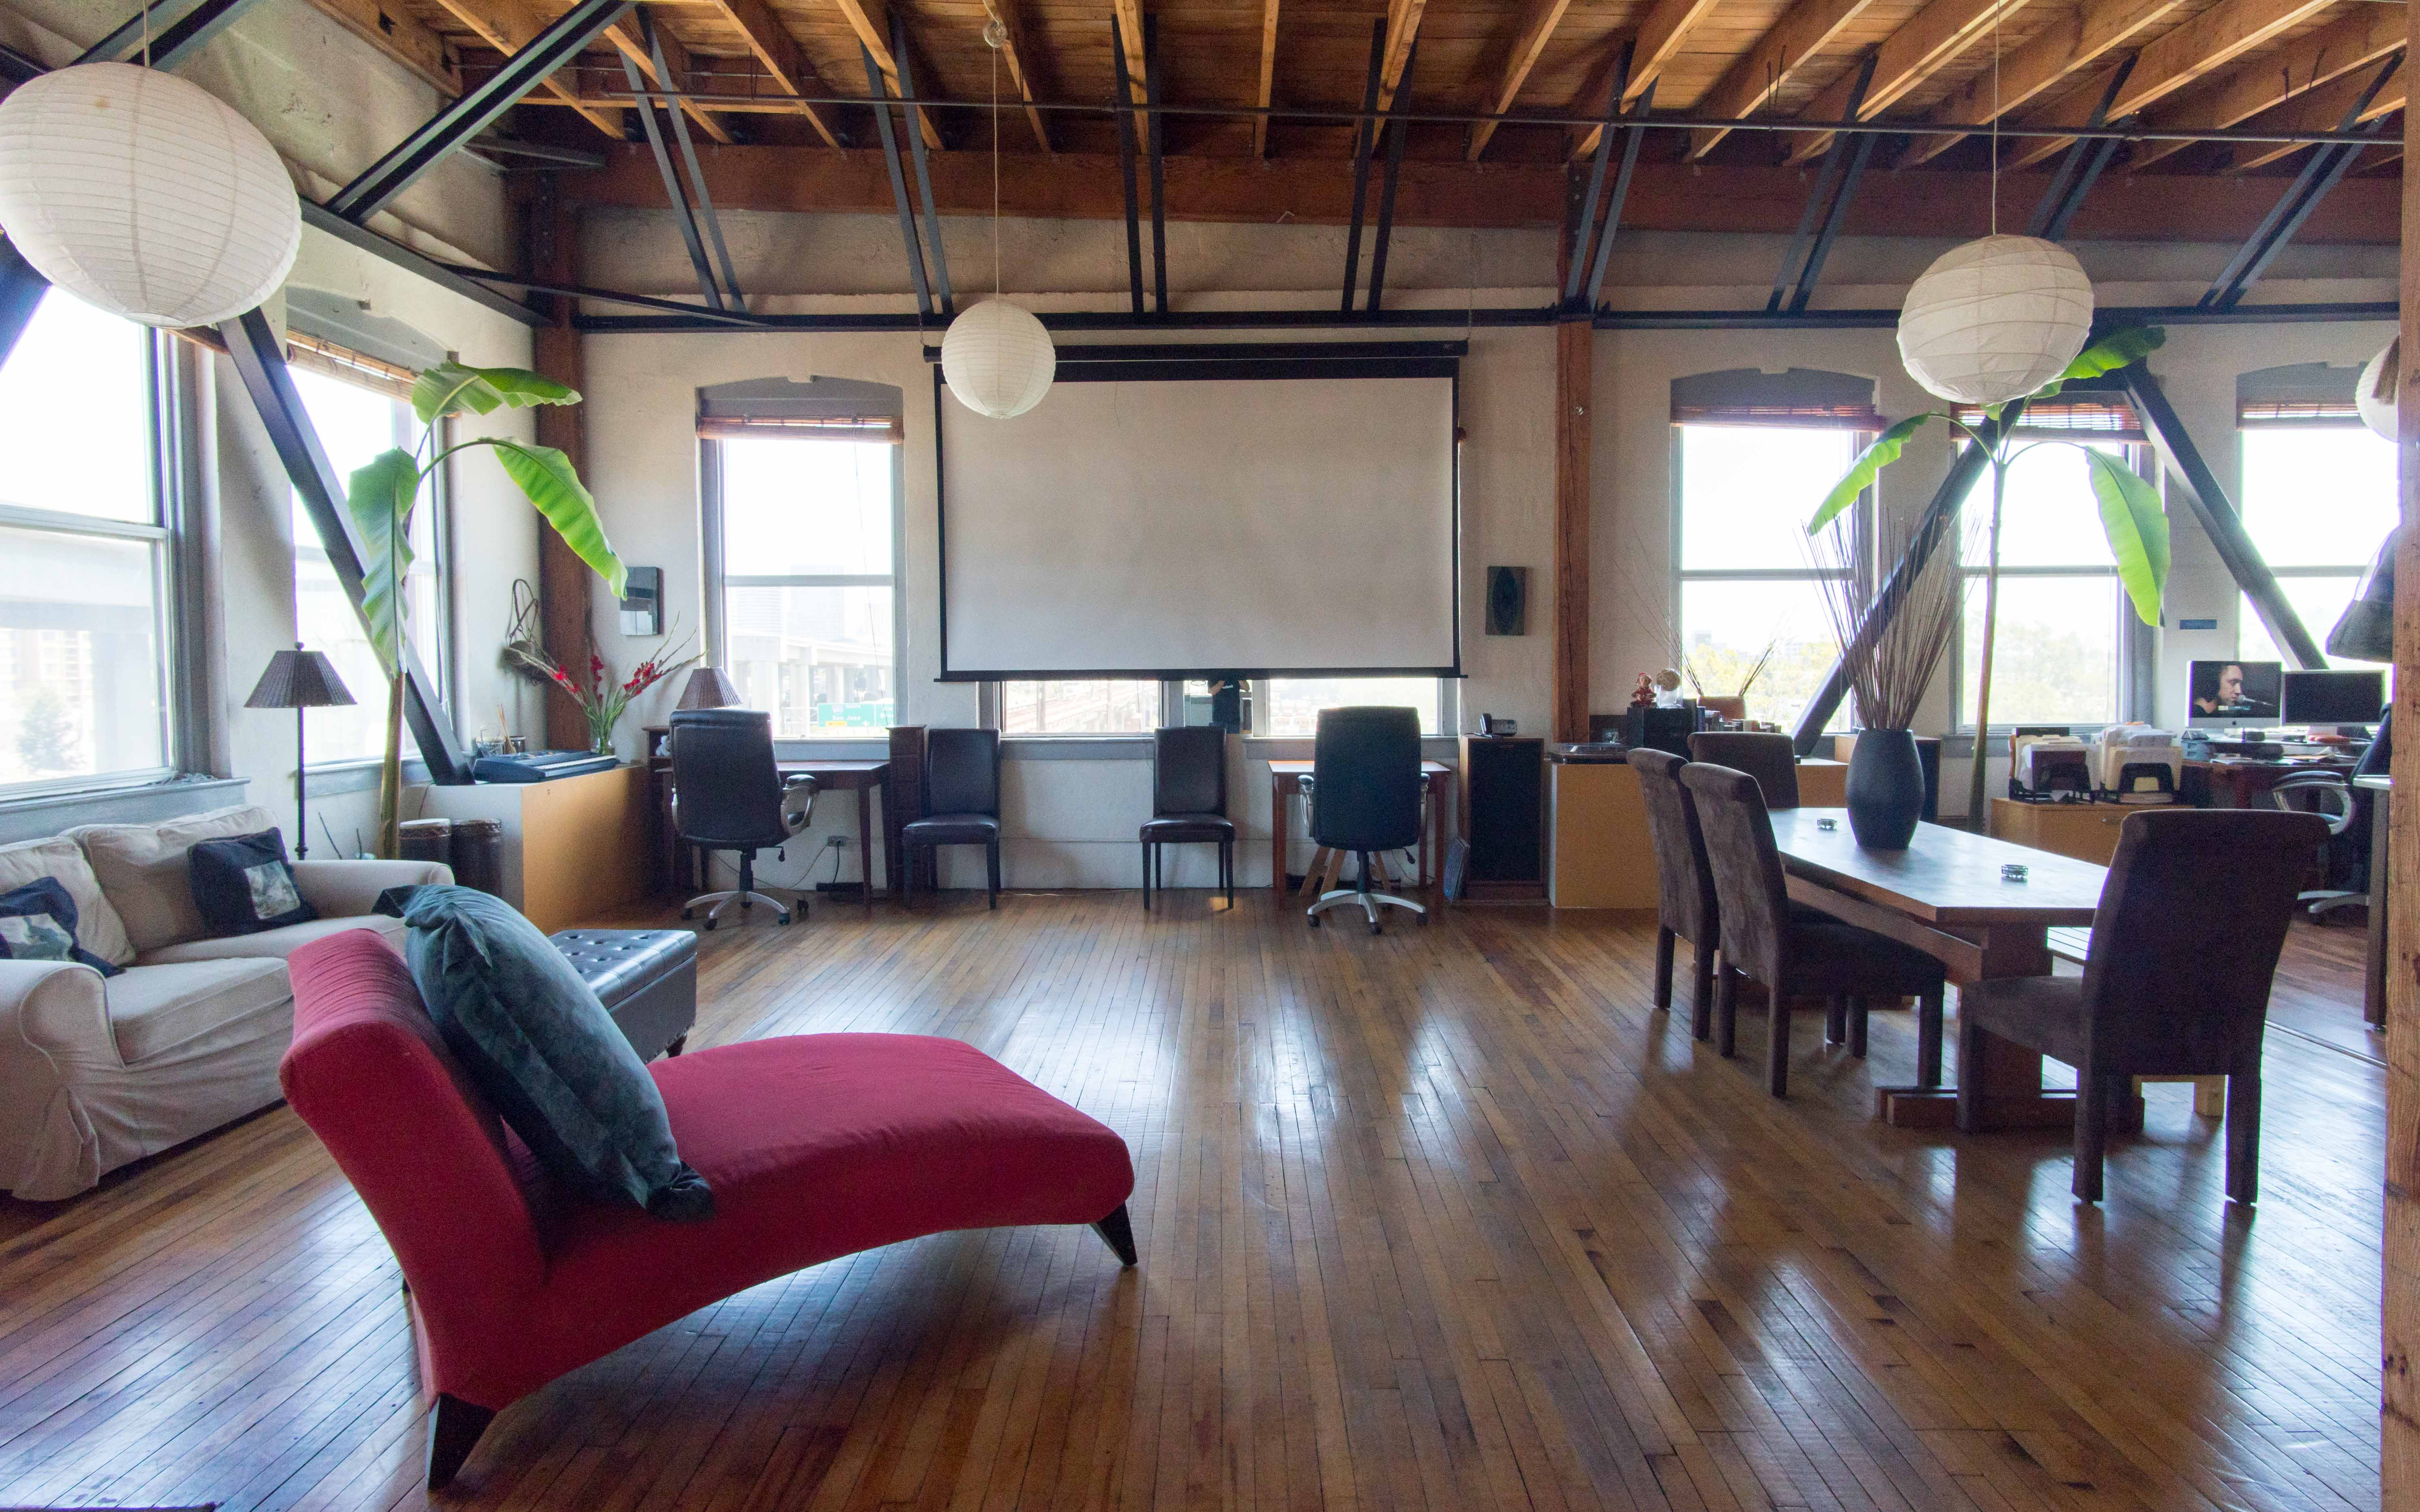 Professional Quality Live Streaming Available Amazing Top Floor 1500 Sq Ft Studio Work Live Loft In West Oakland Jack London Square Industrial Area Beautiful Views Of Jack London Embarcadero Downtown Oakland Emeryville Oakland Ca Off Site